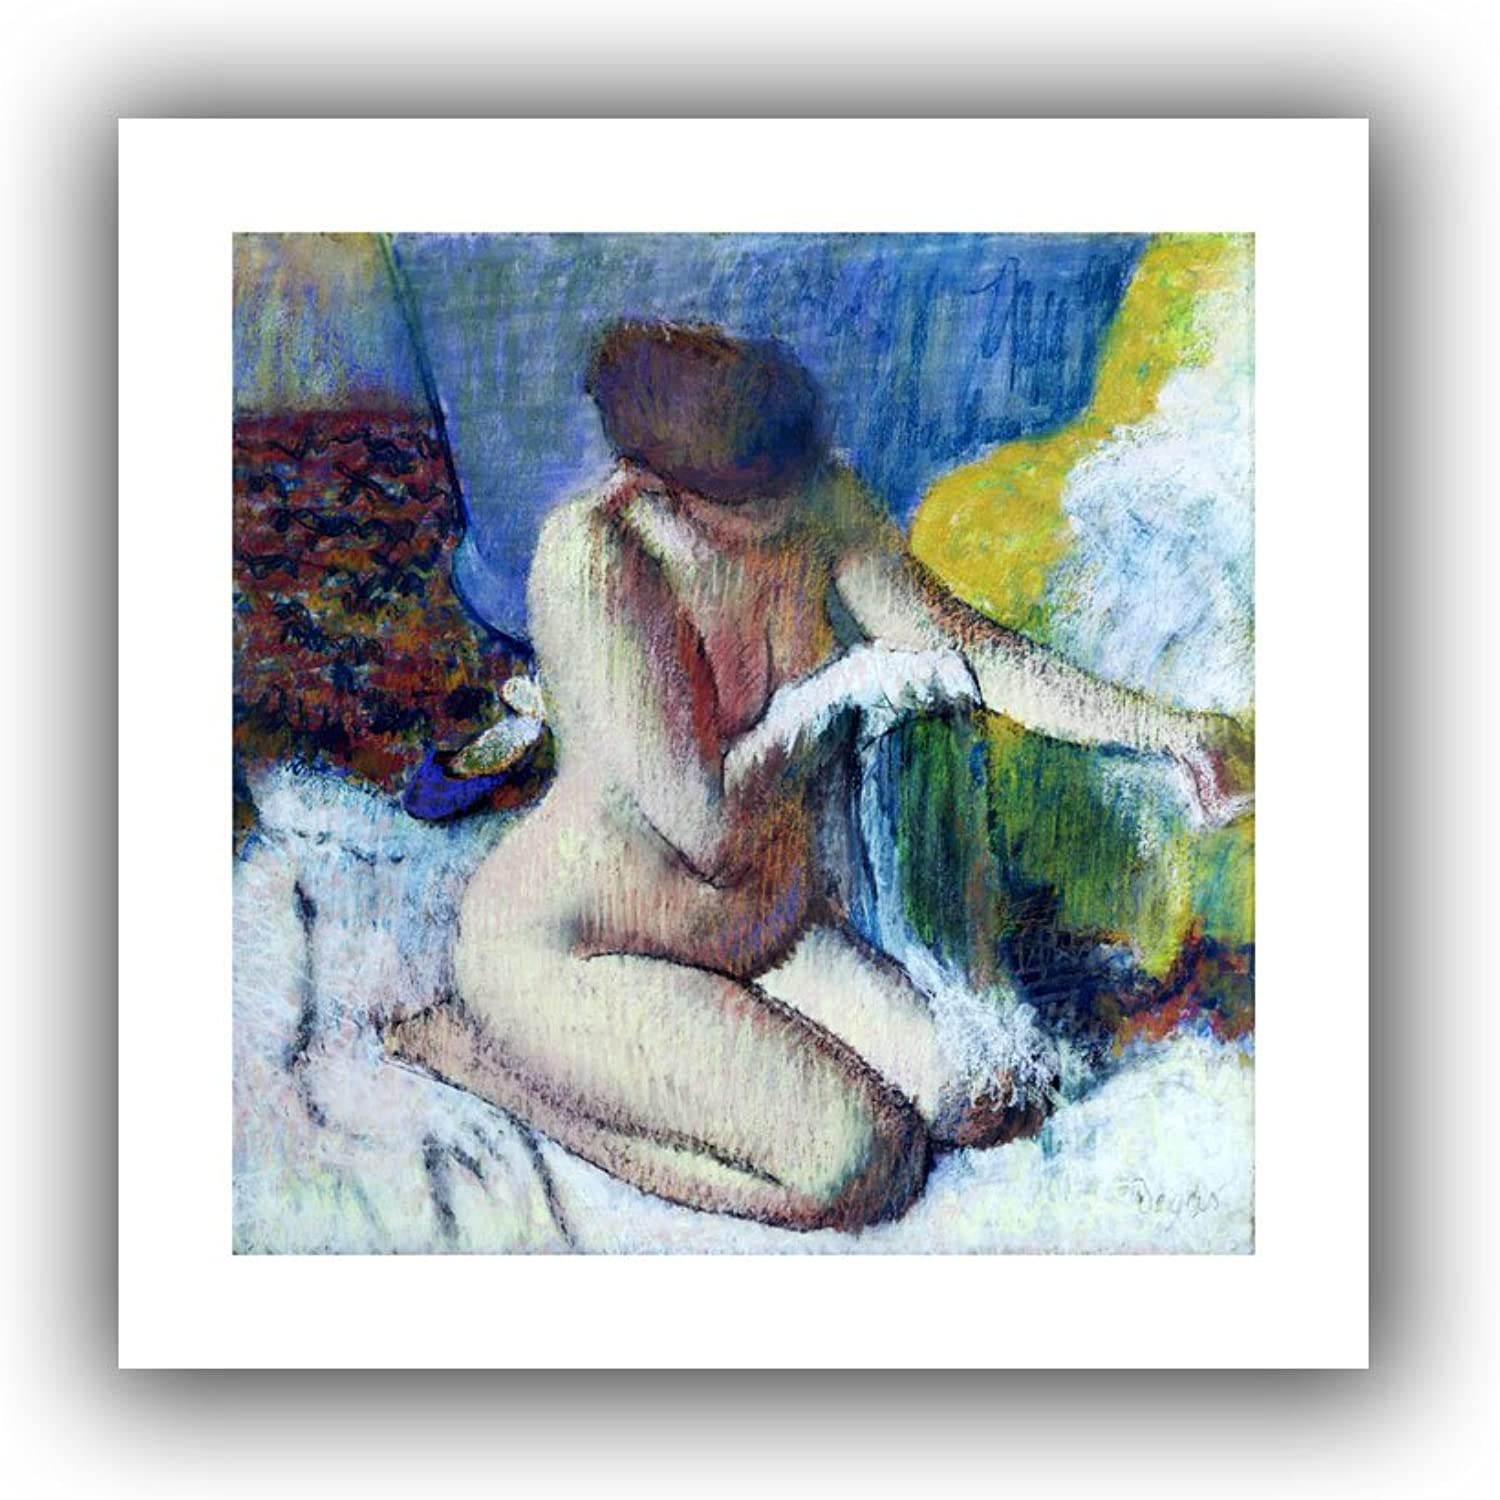 Art Wall Edgar Degas 'After the Bath' Unwrapped Canvas, Flat 28 x 28